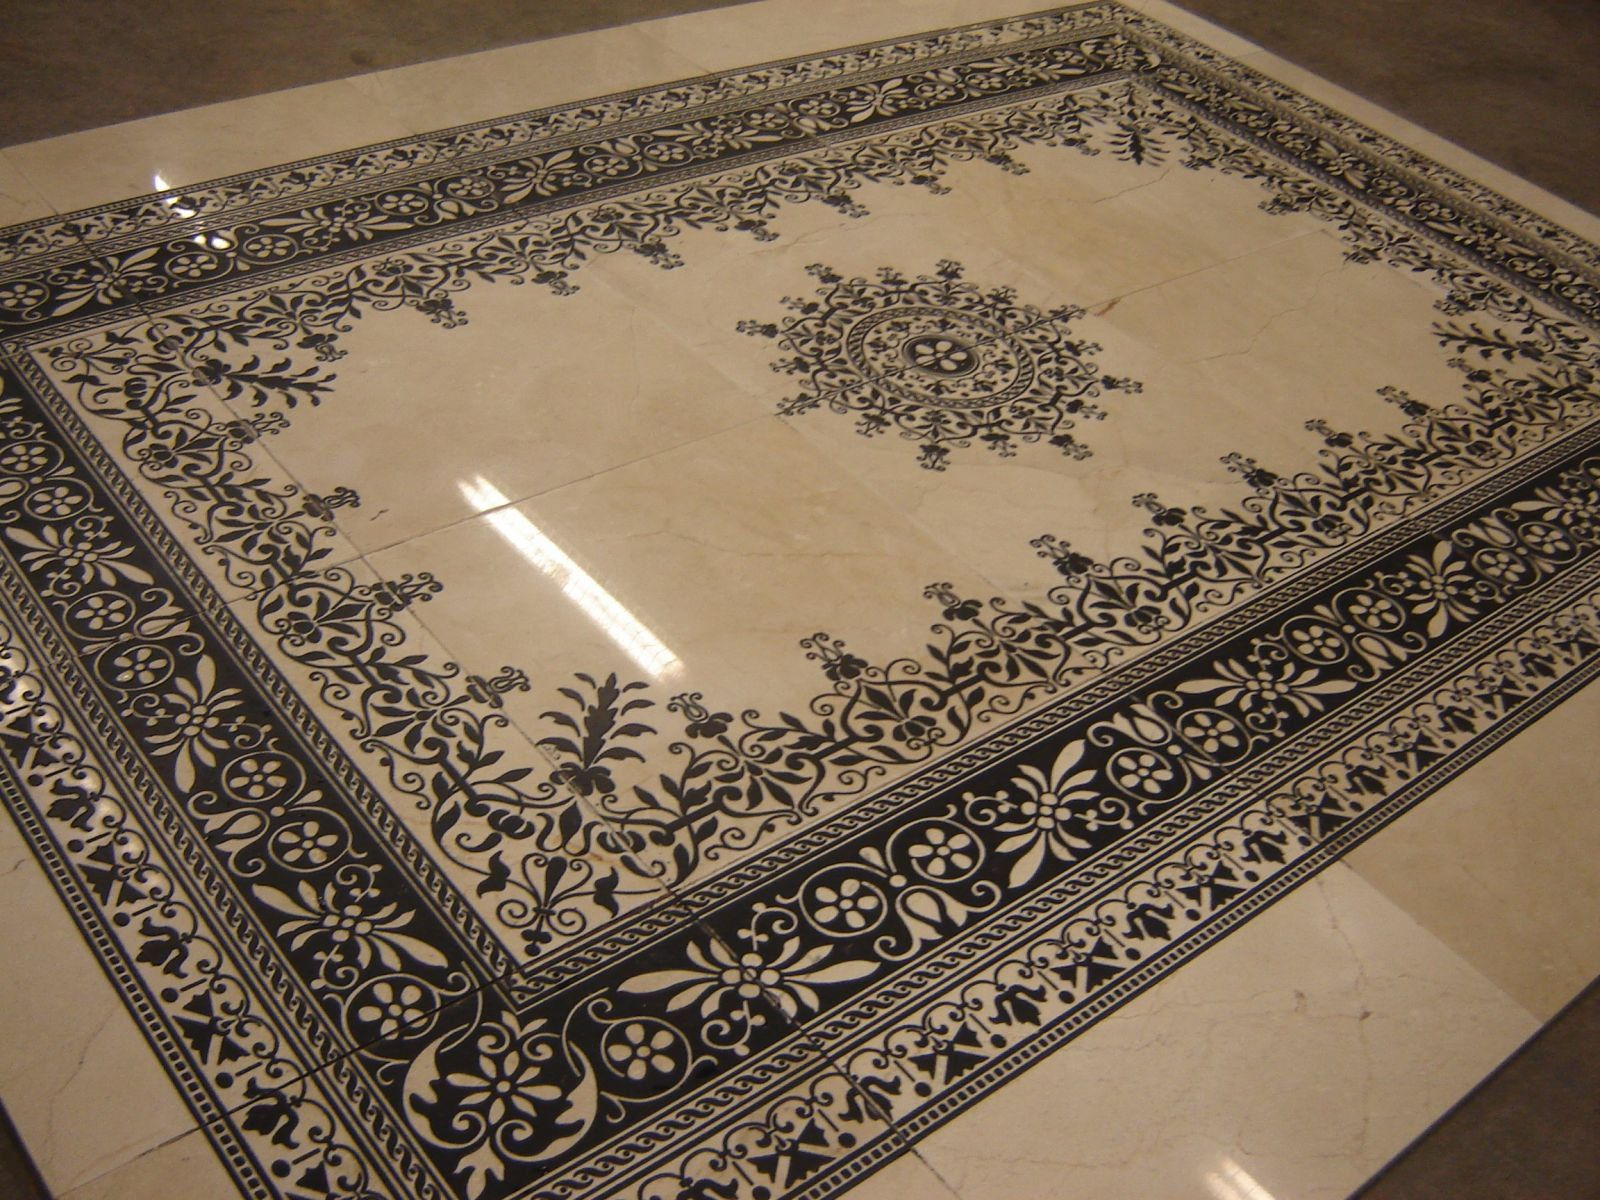 Marble Designs laser-islamic-design-on-white-marble- | // • ιsℓαмιc αяcнιтεcтυяε